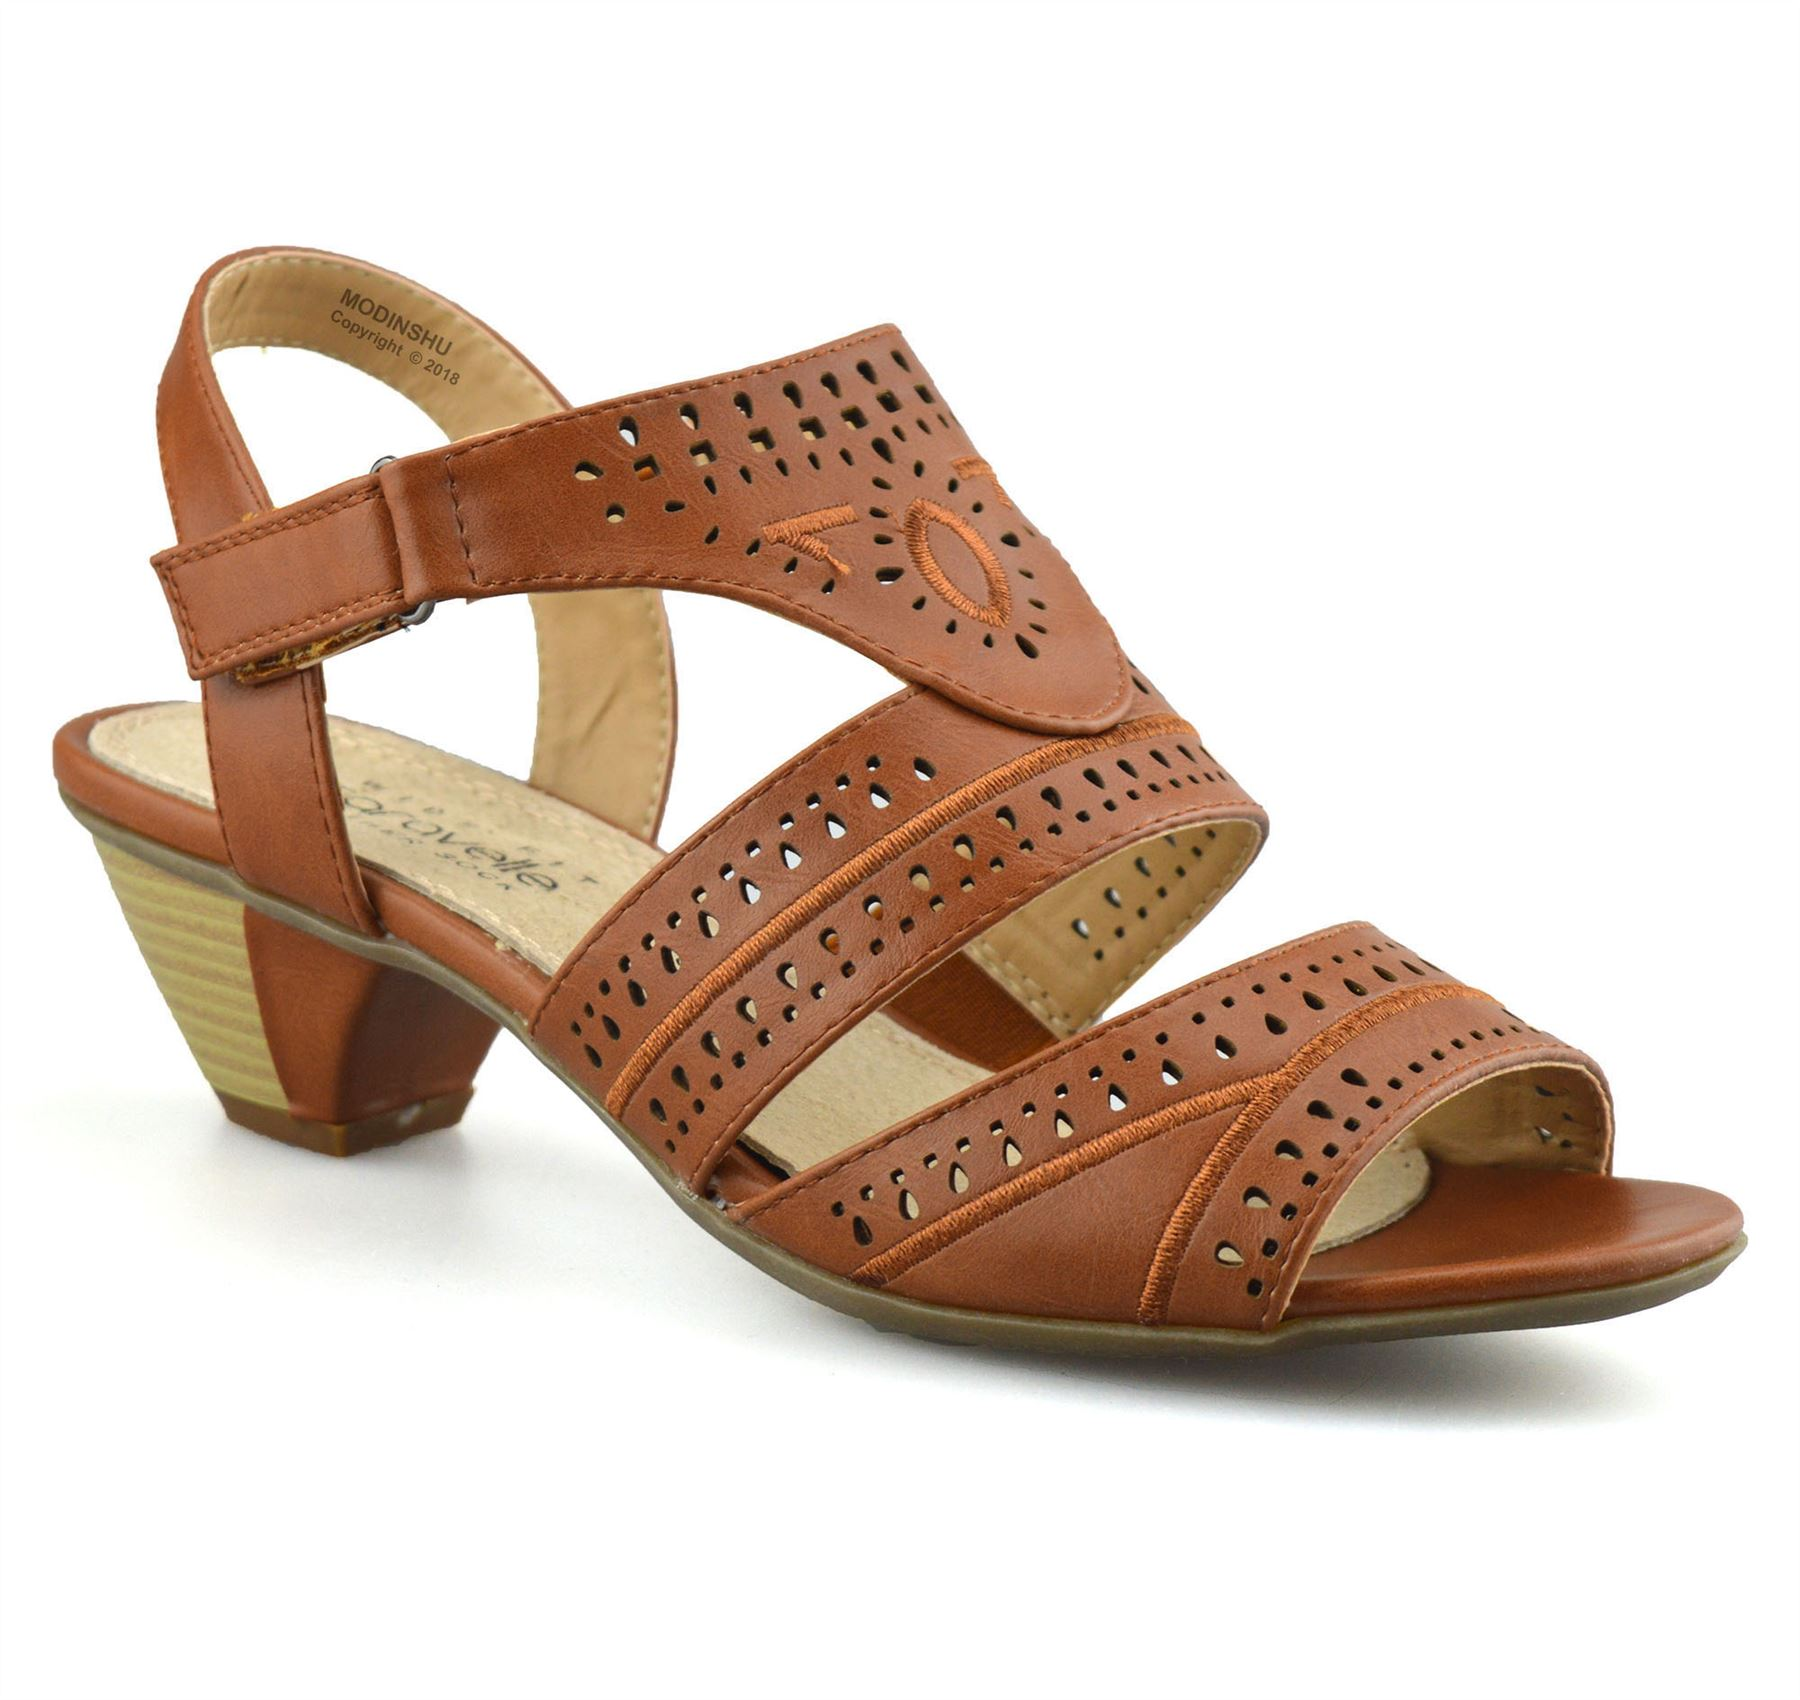 Ladies-Womens-Mid-Wedge-Heel-Wide-Fit-Casual-Comfort-Walking-Sandals-Shoes-Size